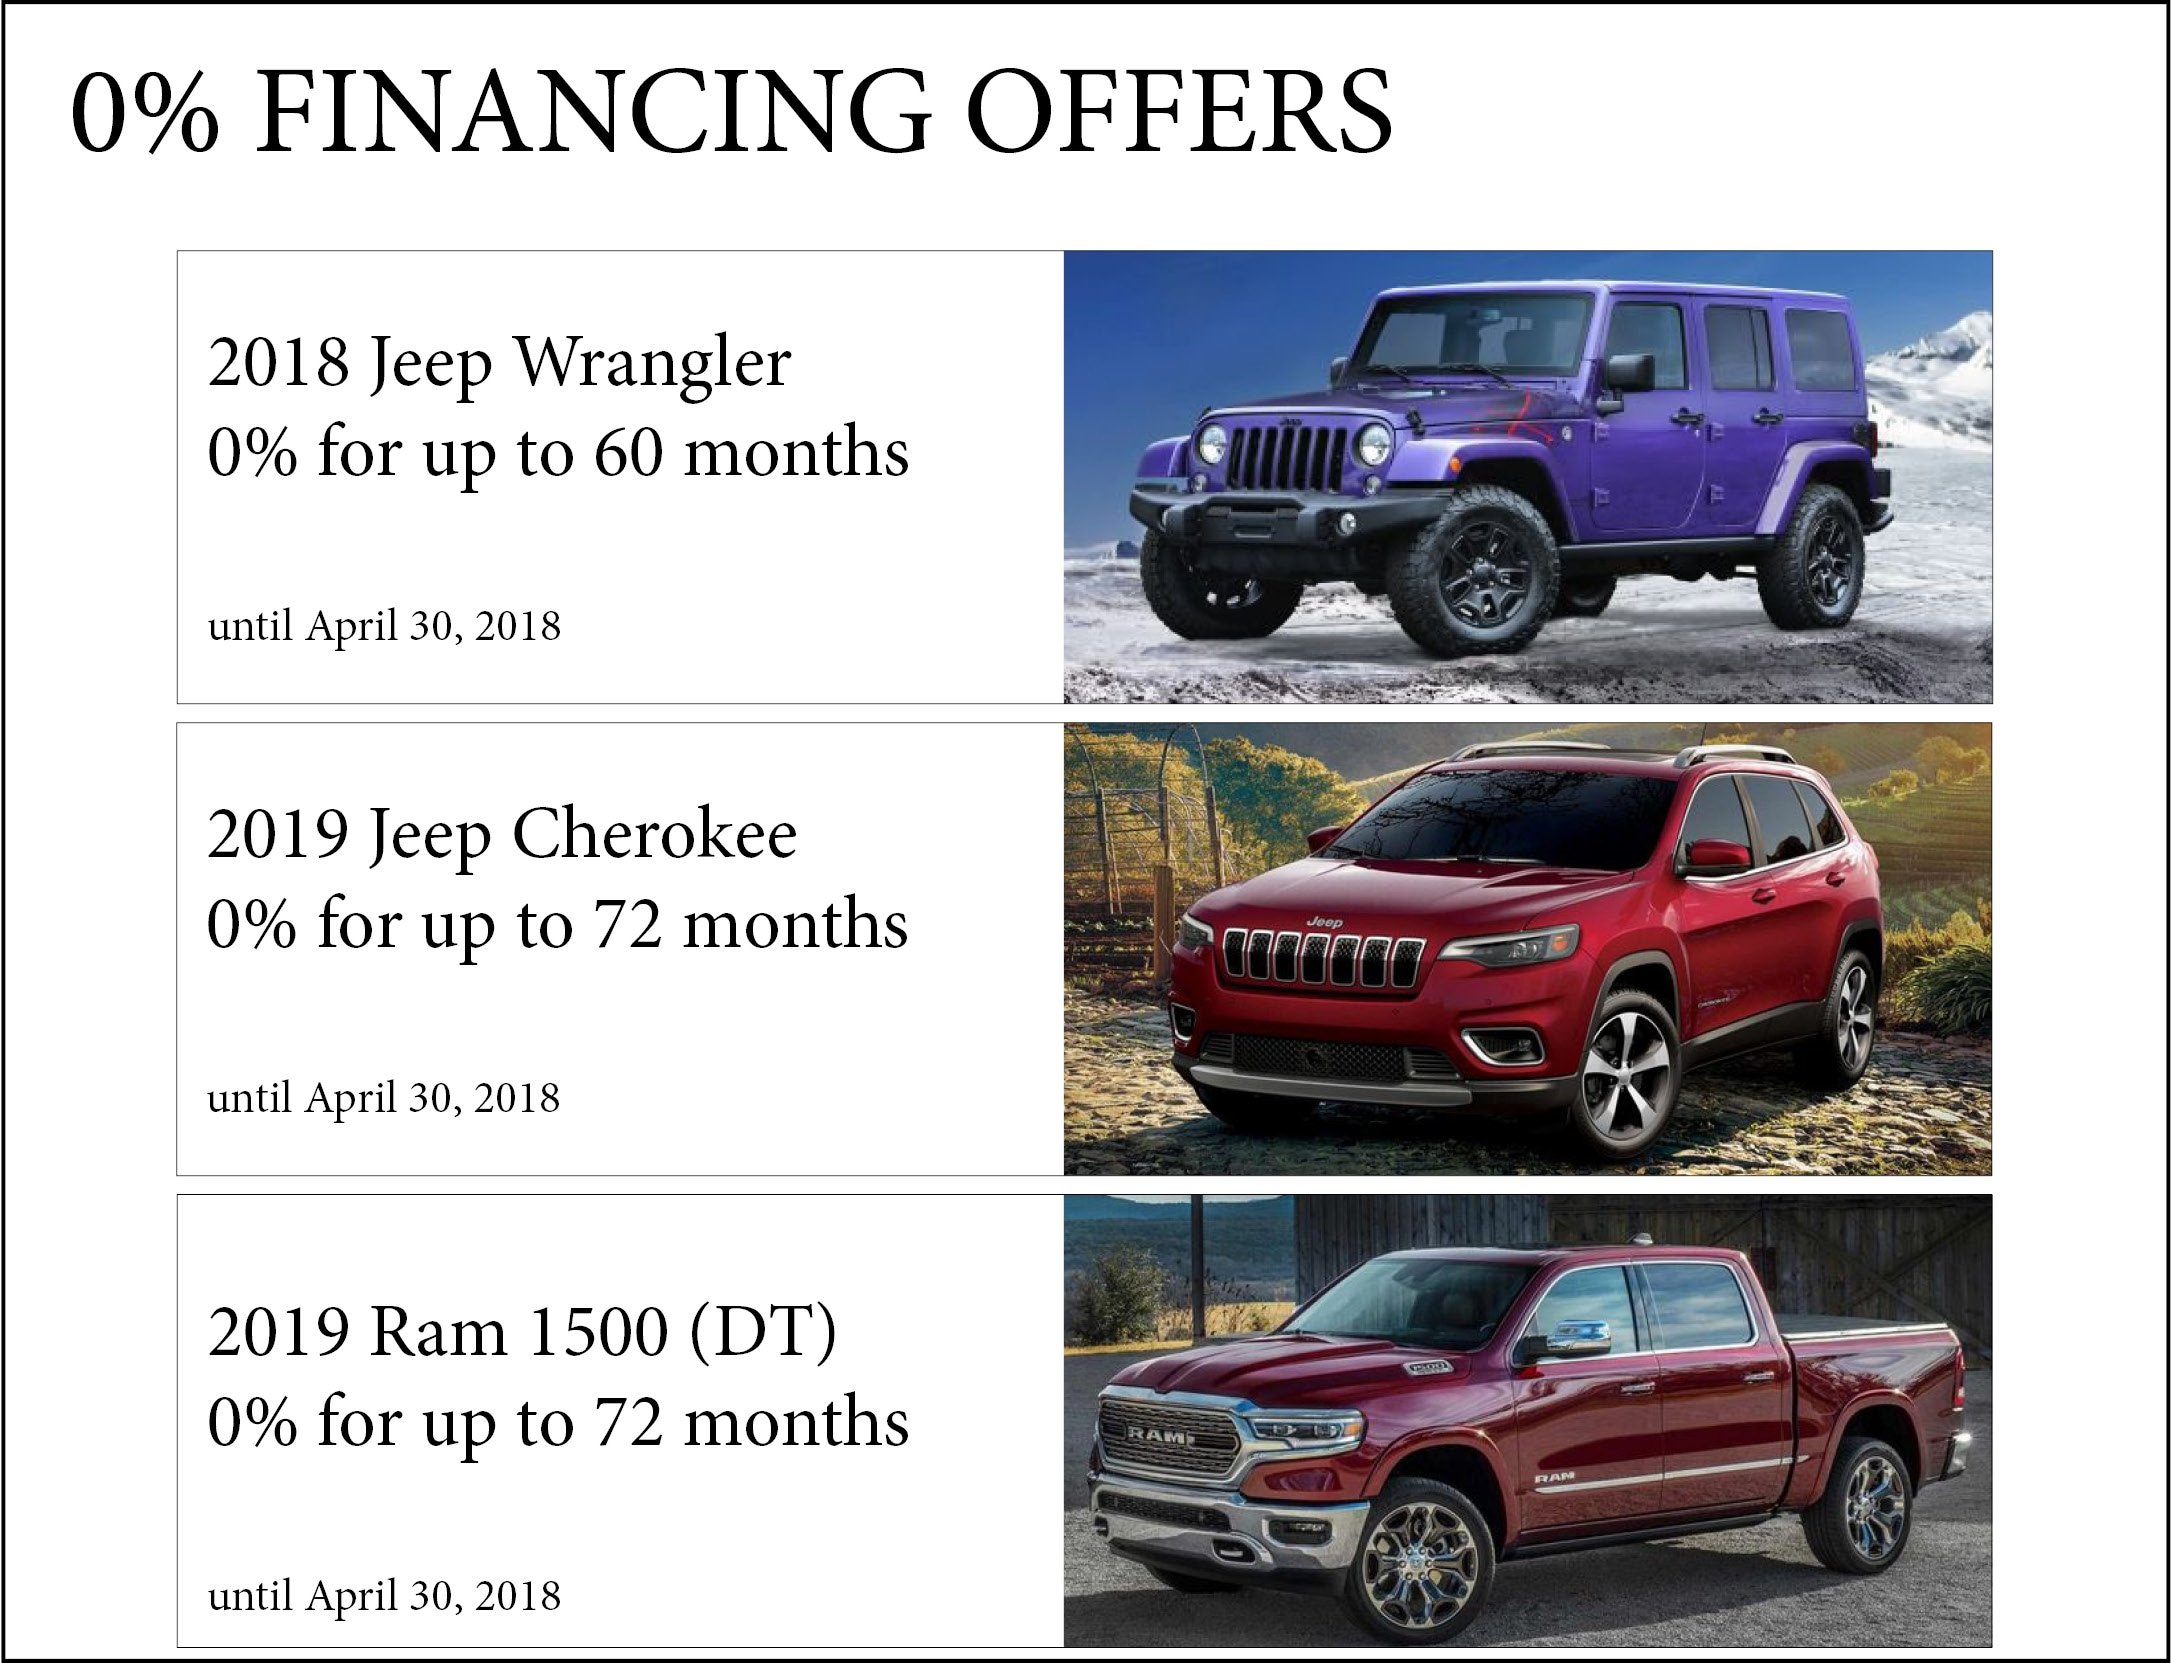 journalism quci incentives latest all original the images wrangler unlimited car jk in find place autos then start research lease pricing one freebies michigan jeep deals rebates and